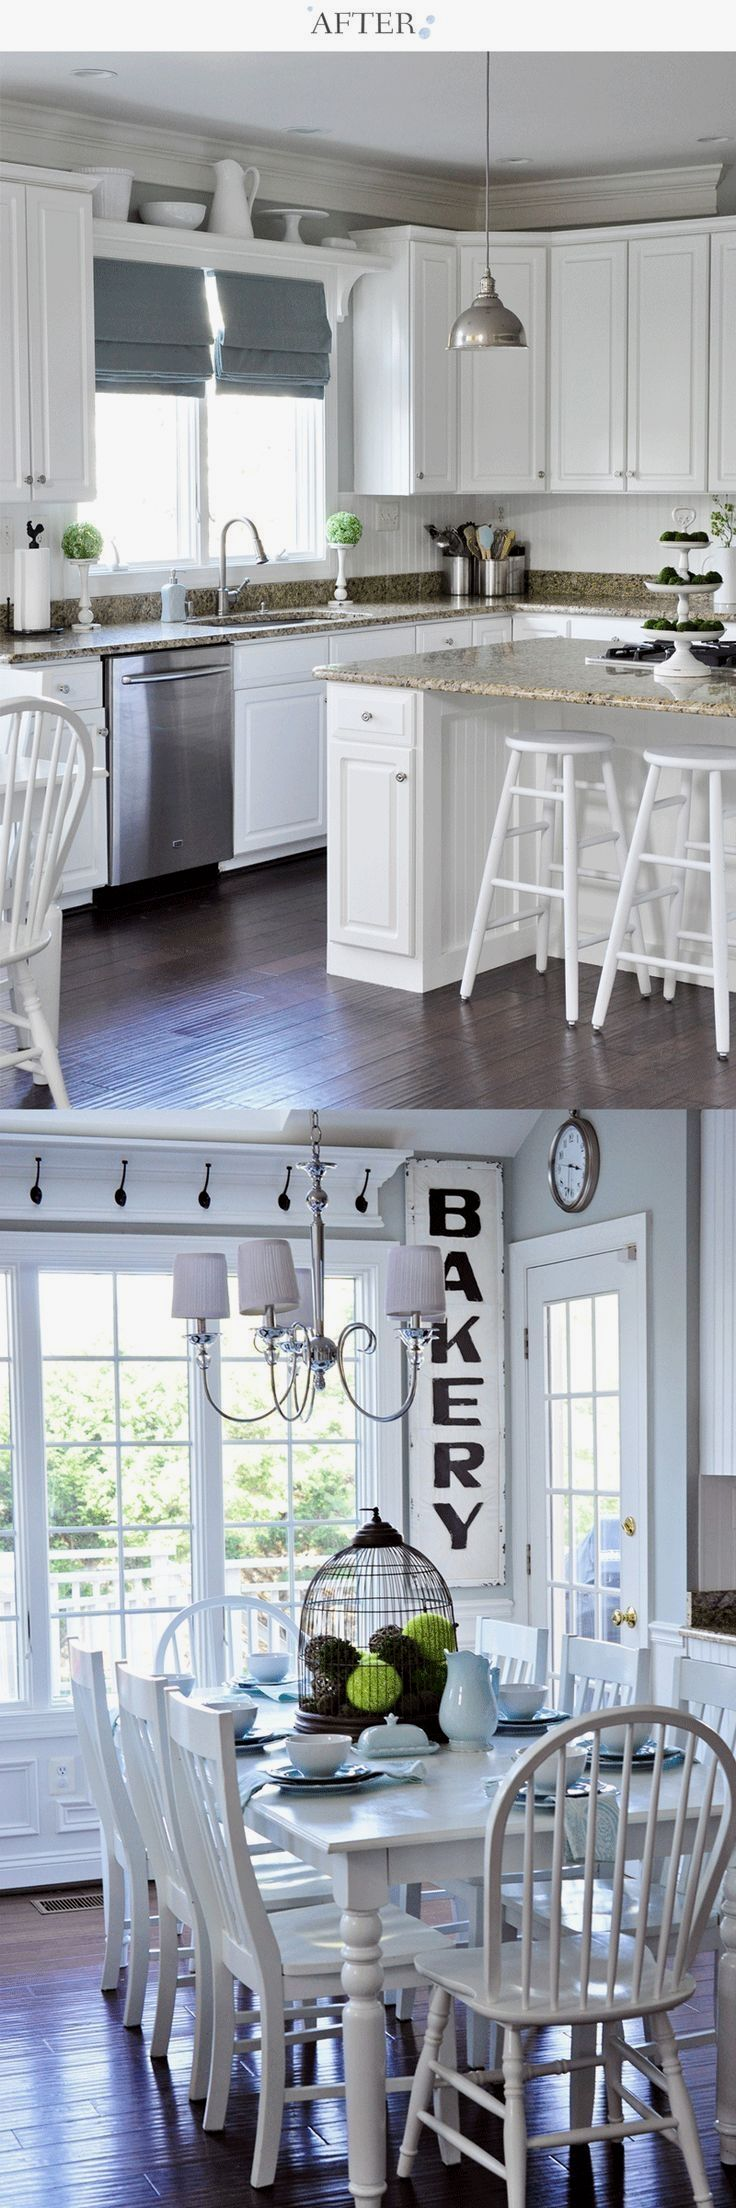 Low window behind kitchen sink  pin by betsy roe on chabby chic beachy in   pinterest  kitchen